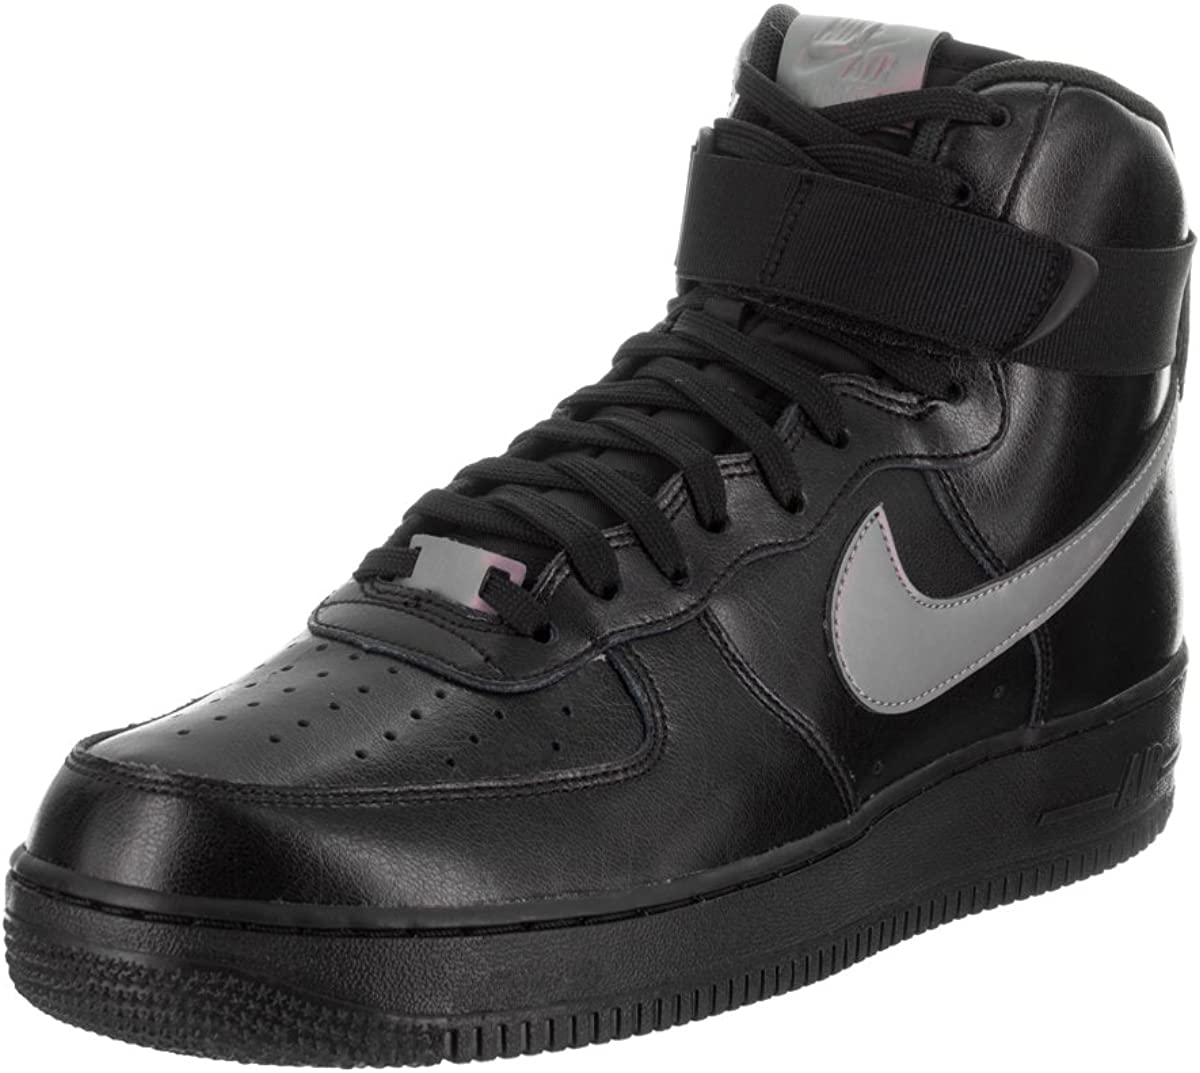 [ナイキ] AIR FORCE 1 HIGH '07 LV8 806403-601 黒/Multi-color-黒 11 D(M) US